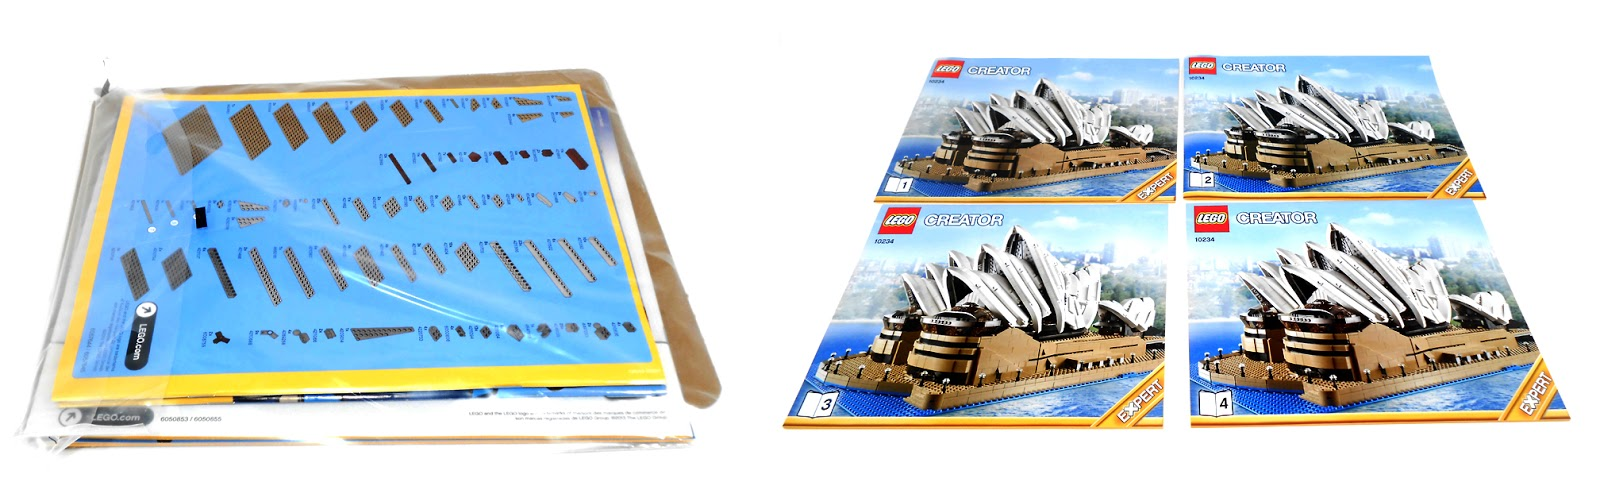 Oz Brick Nation Lego Creator 10234 Sydney Opera House Review